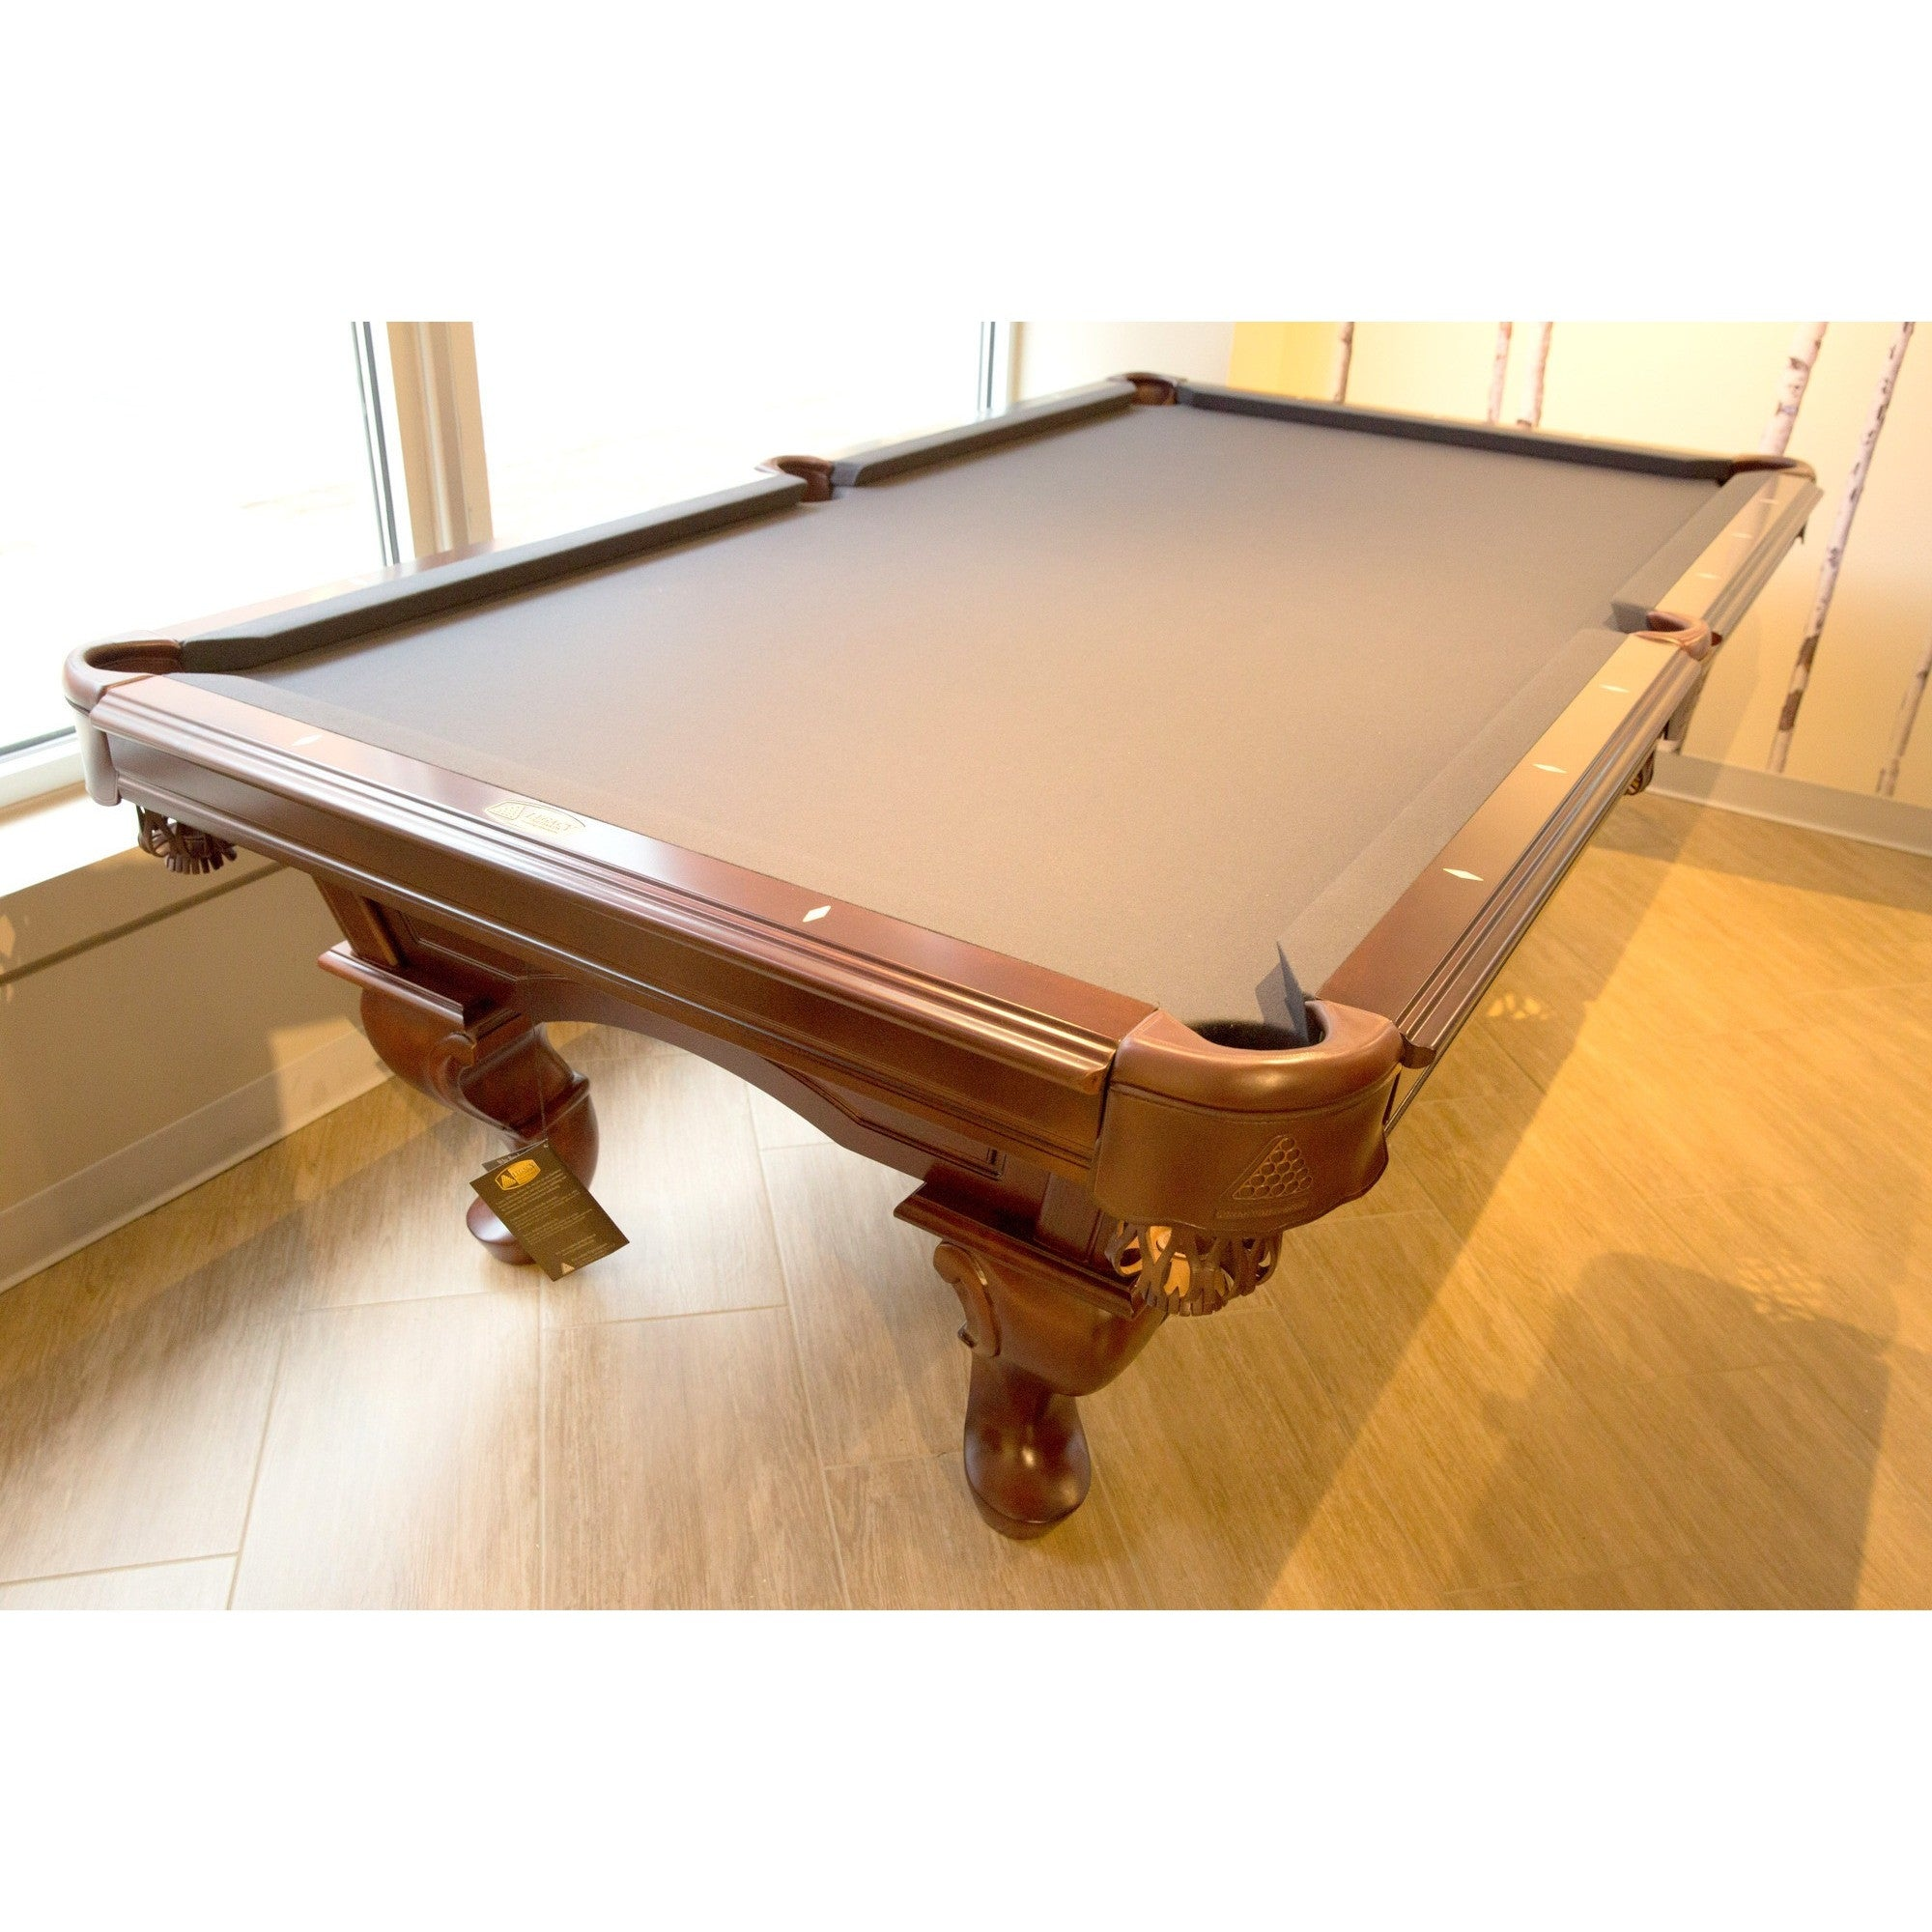 Mallory Pool Table, Pool Tables, Legacy - Danny Vegh's